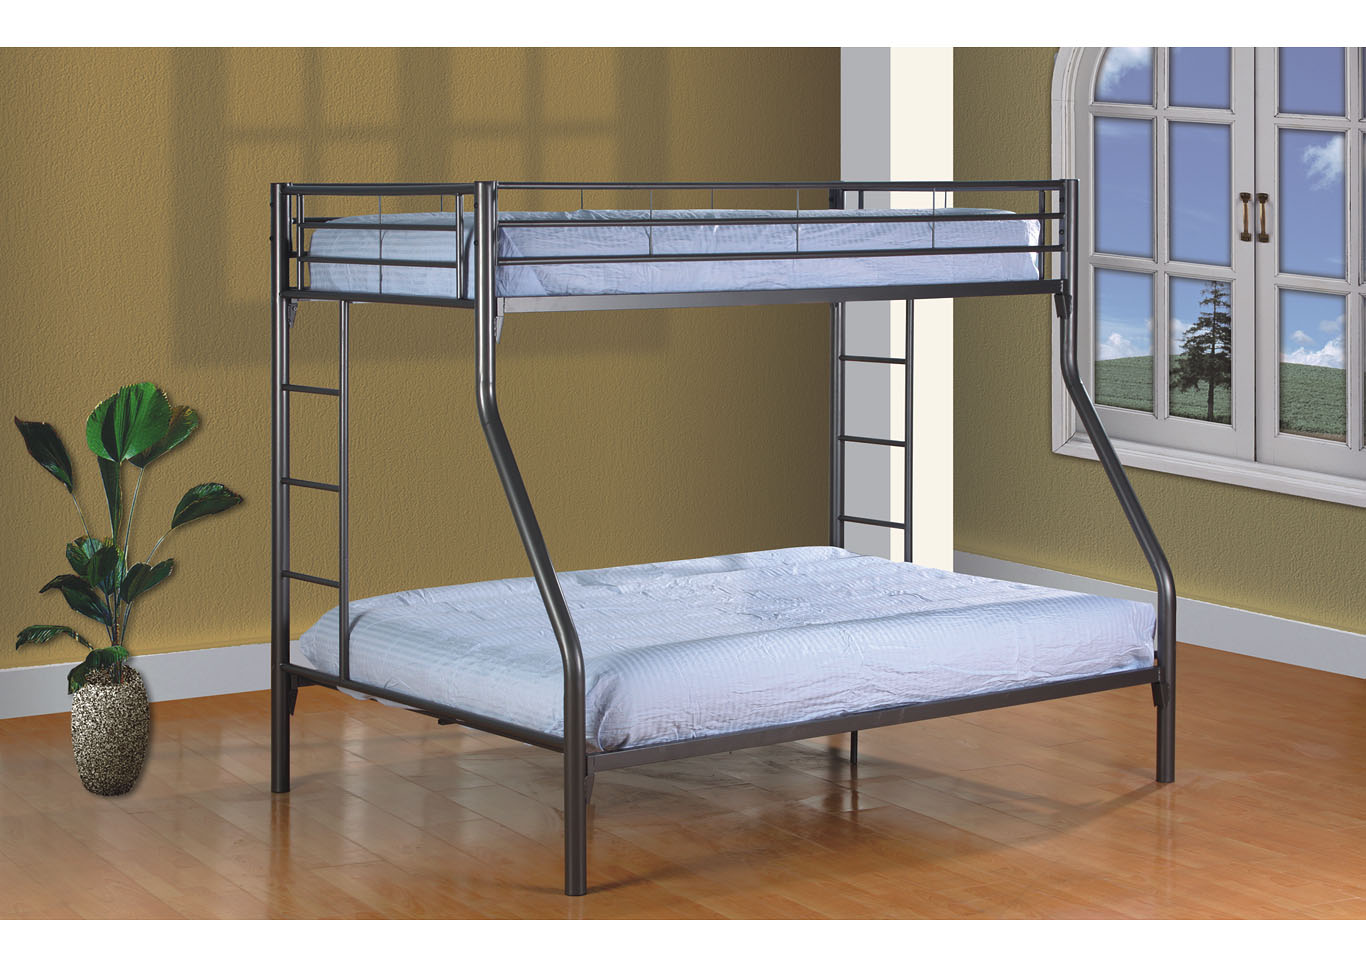 Grey Twin/Full Bunk Bed,Global Trading